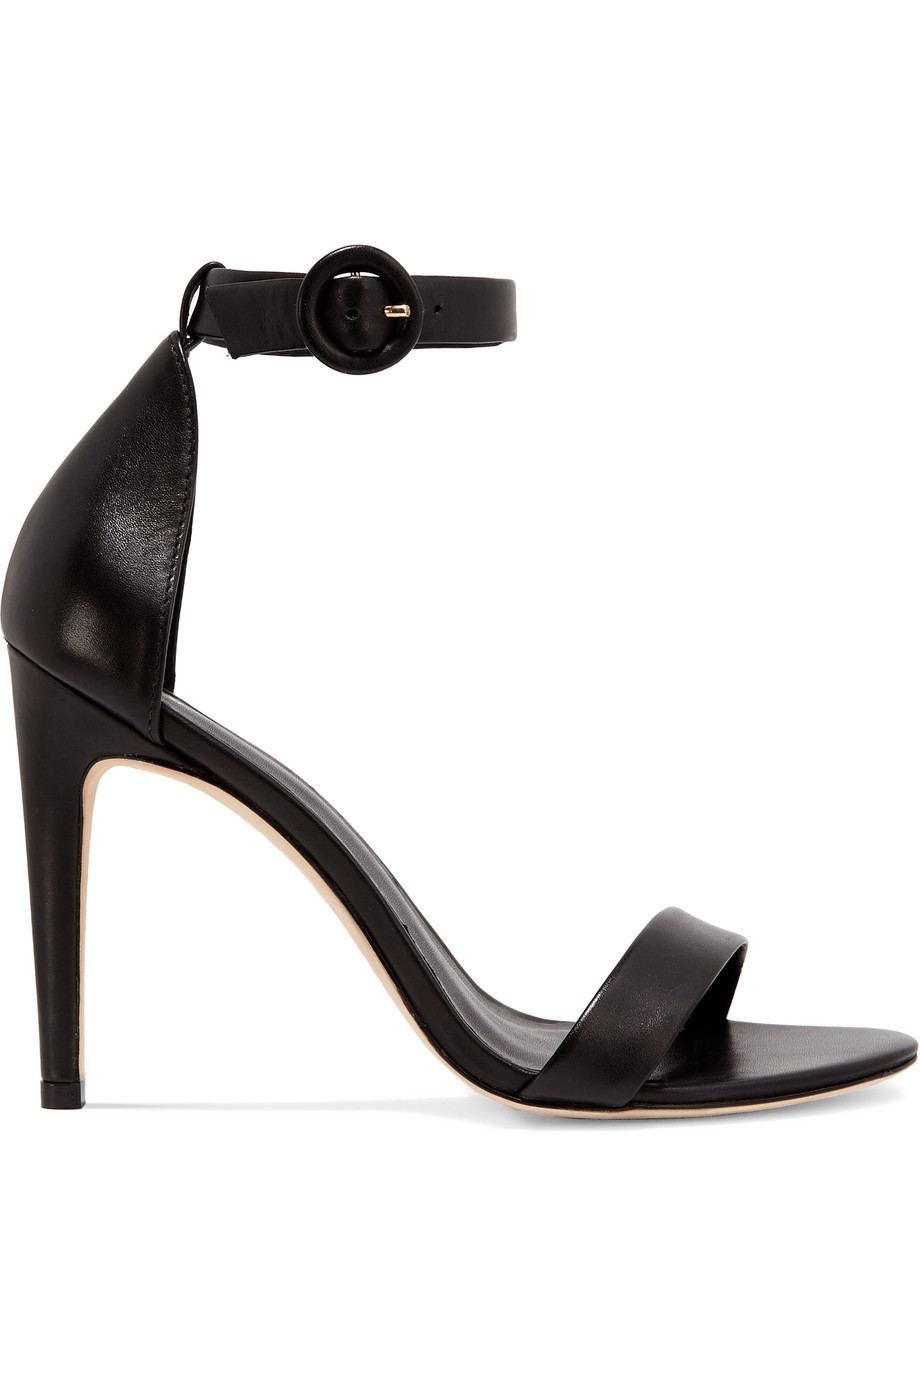 Rivington Leather Sandals Black - predominant colour: black; occasions: evening, occasion; material: leather; ankle detail: ankle strap; heel: stiletto; toe: open toe/peeptoe; style: standard; finish: plain; pattern: plain; heel height: very high; season: s/s 2016; wardrobe: event